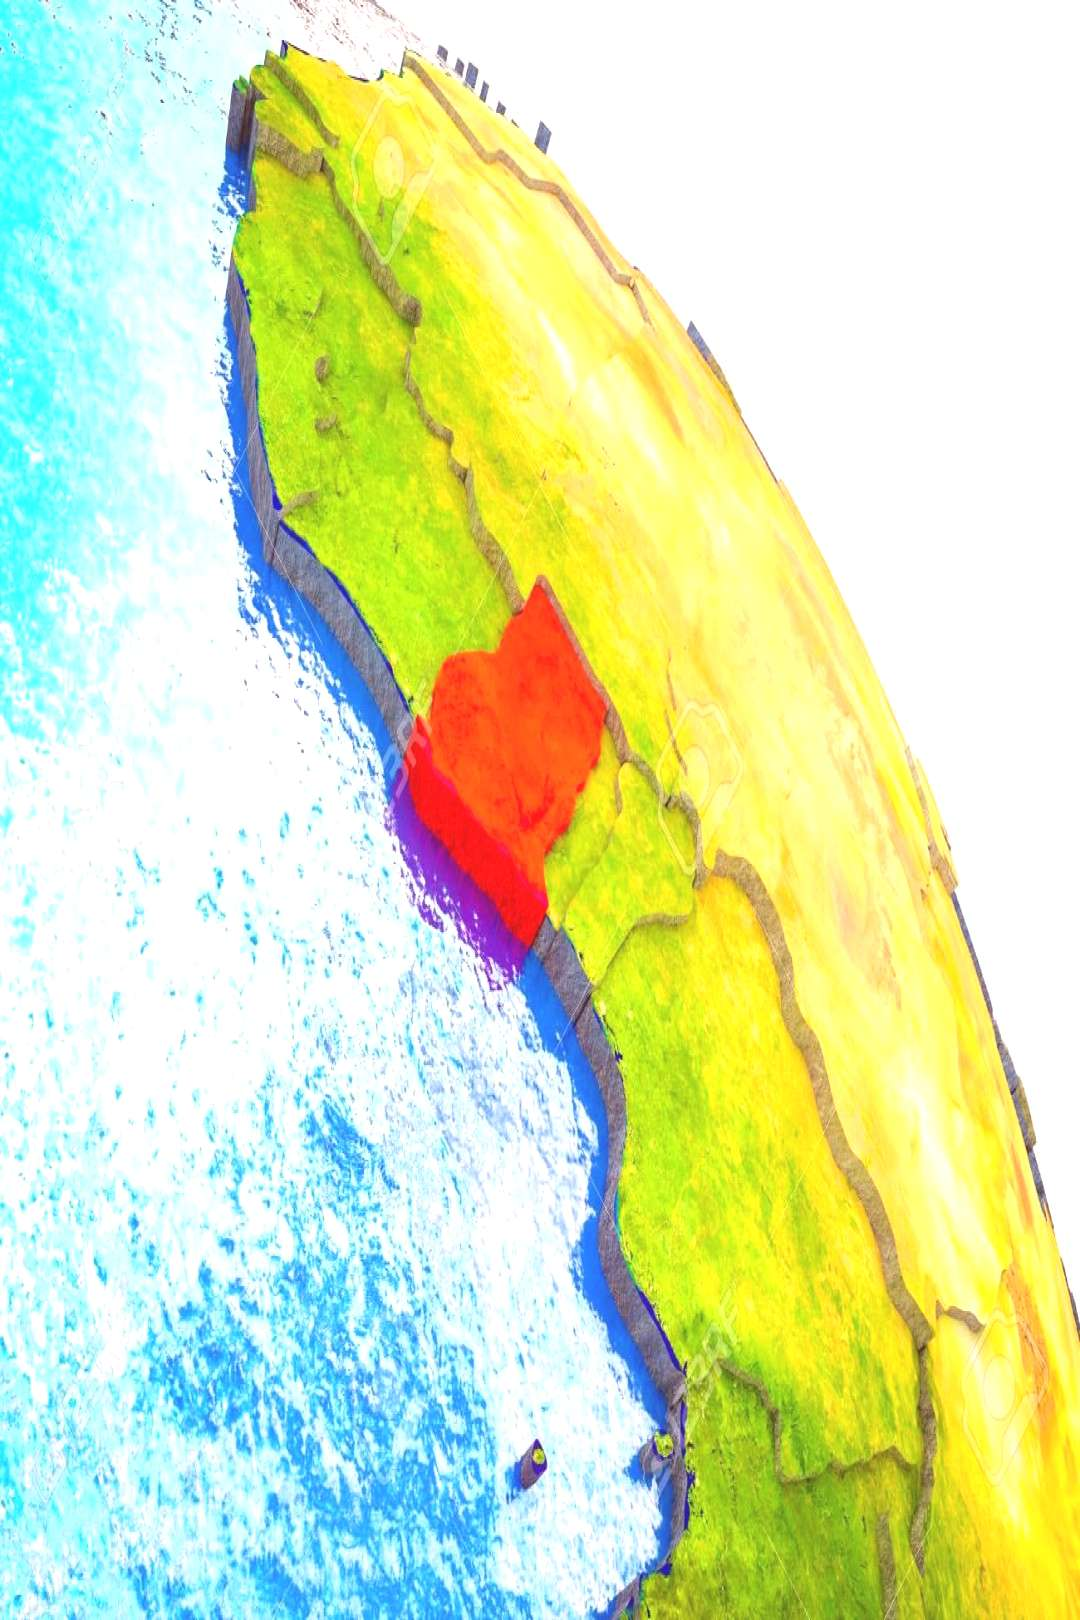 Ghana Highlighted on 3D Earth model with water and visible country borders. 3D illustration. Stock